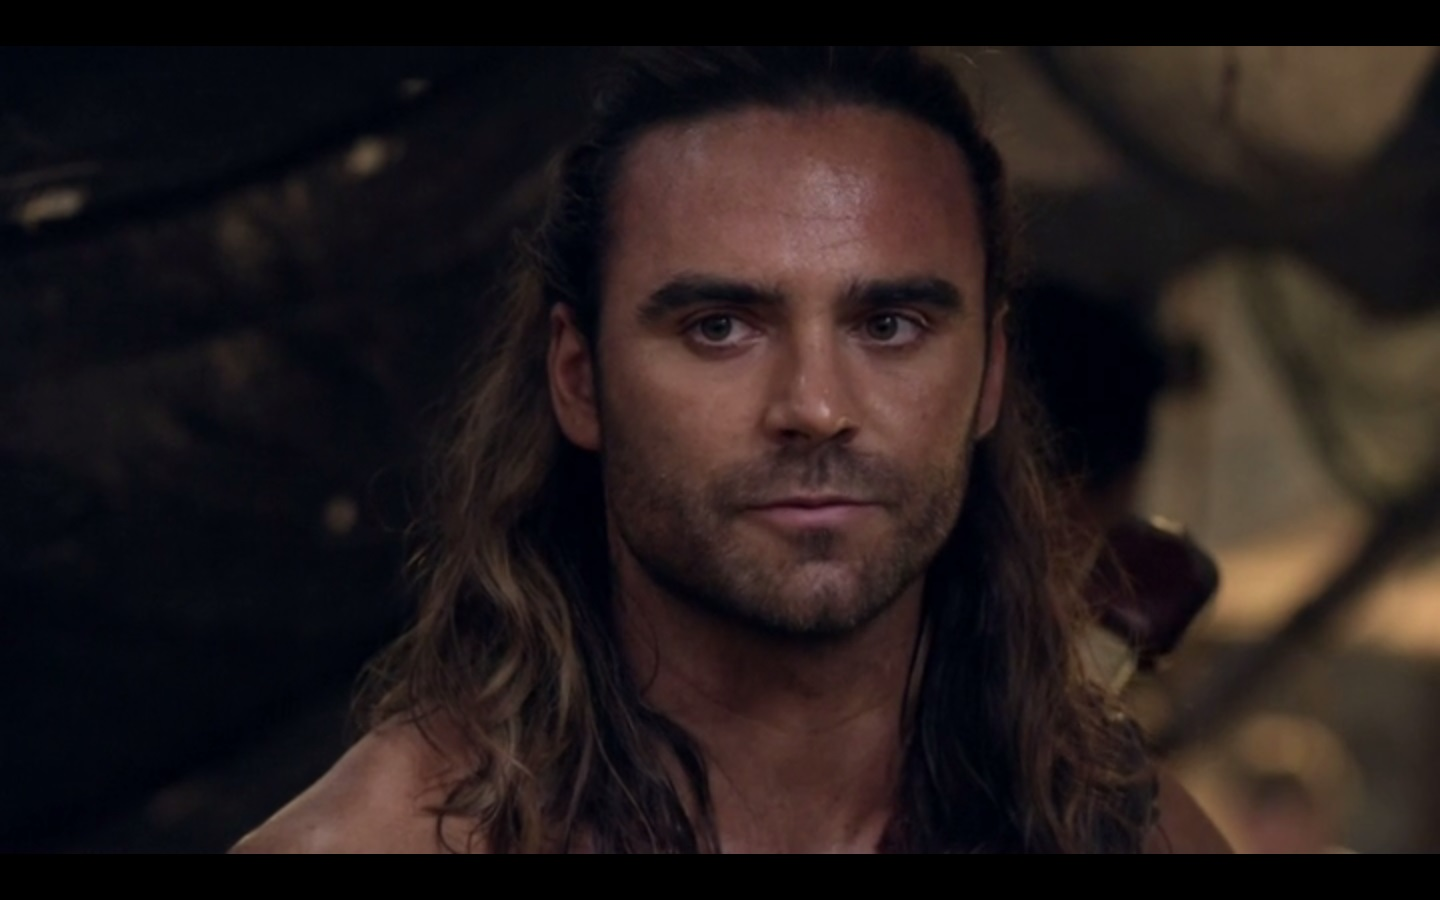 EvilTwin's Male Film & TV Screencaps 2: Spartacus: War of ...